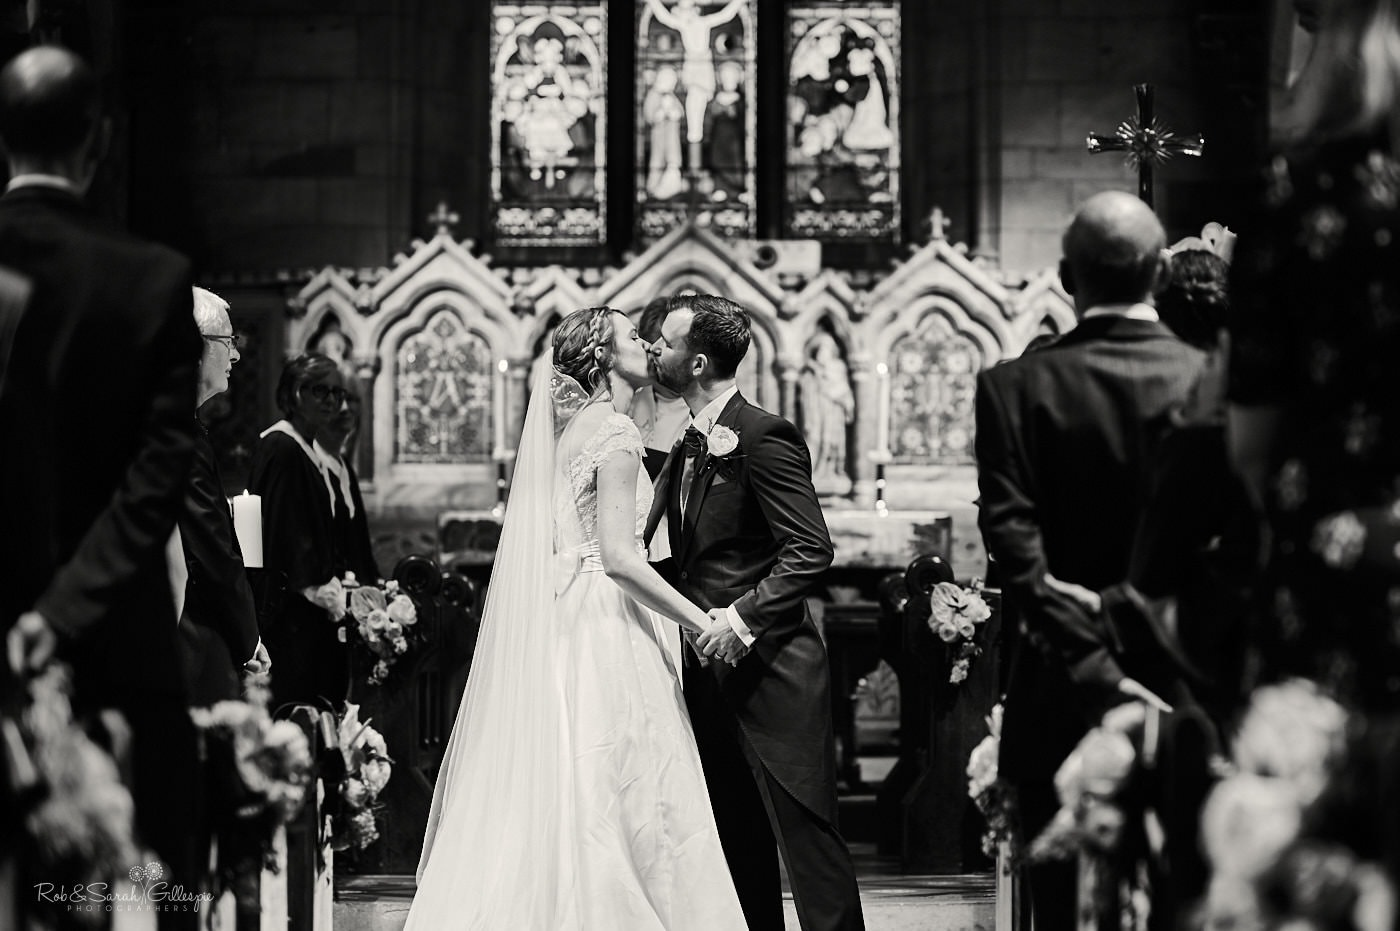 Bride and groom first kiss during church wedding ceremony